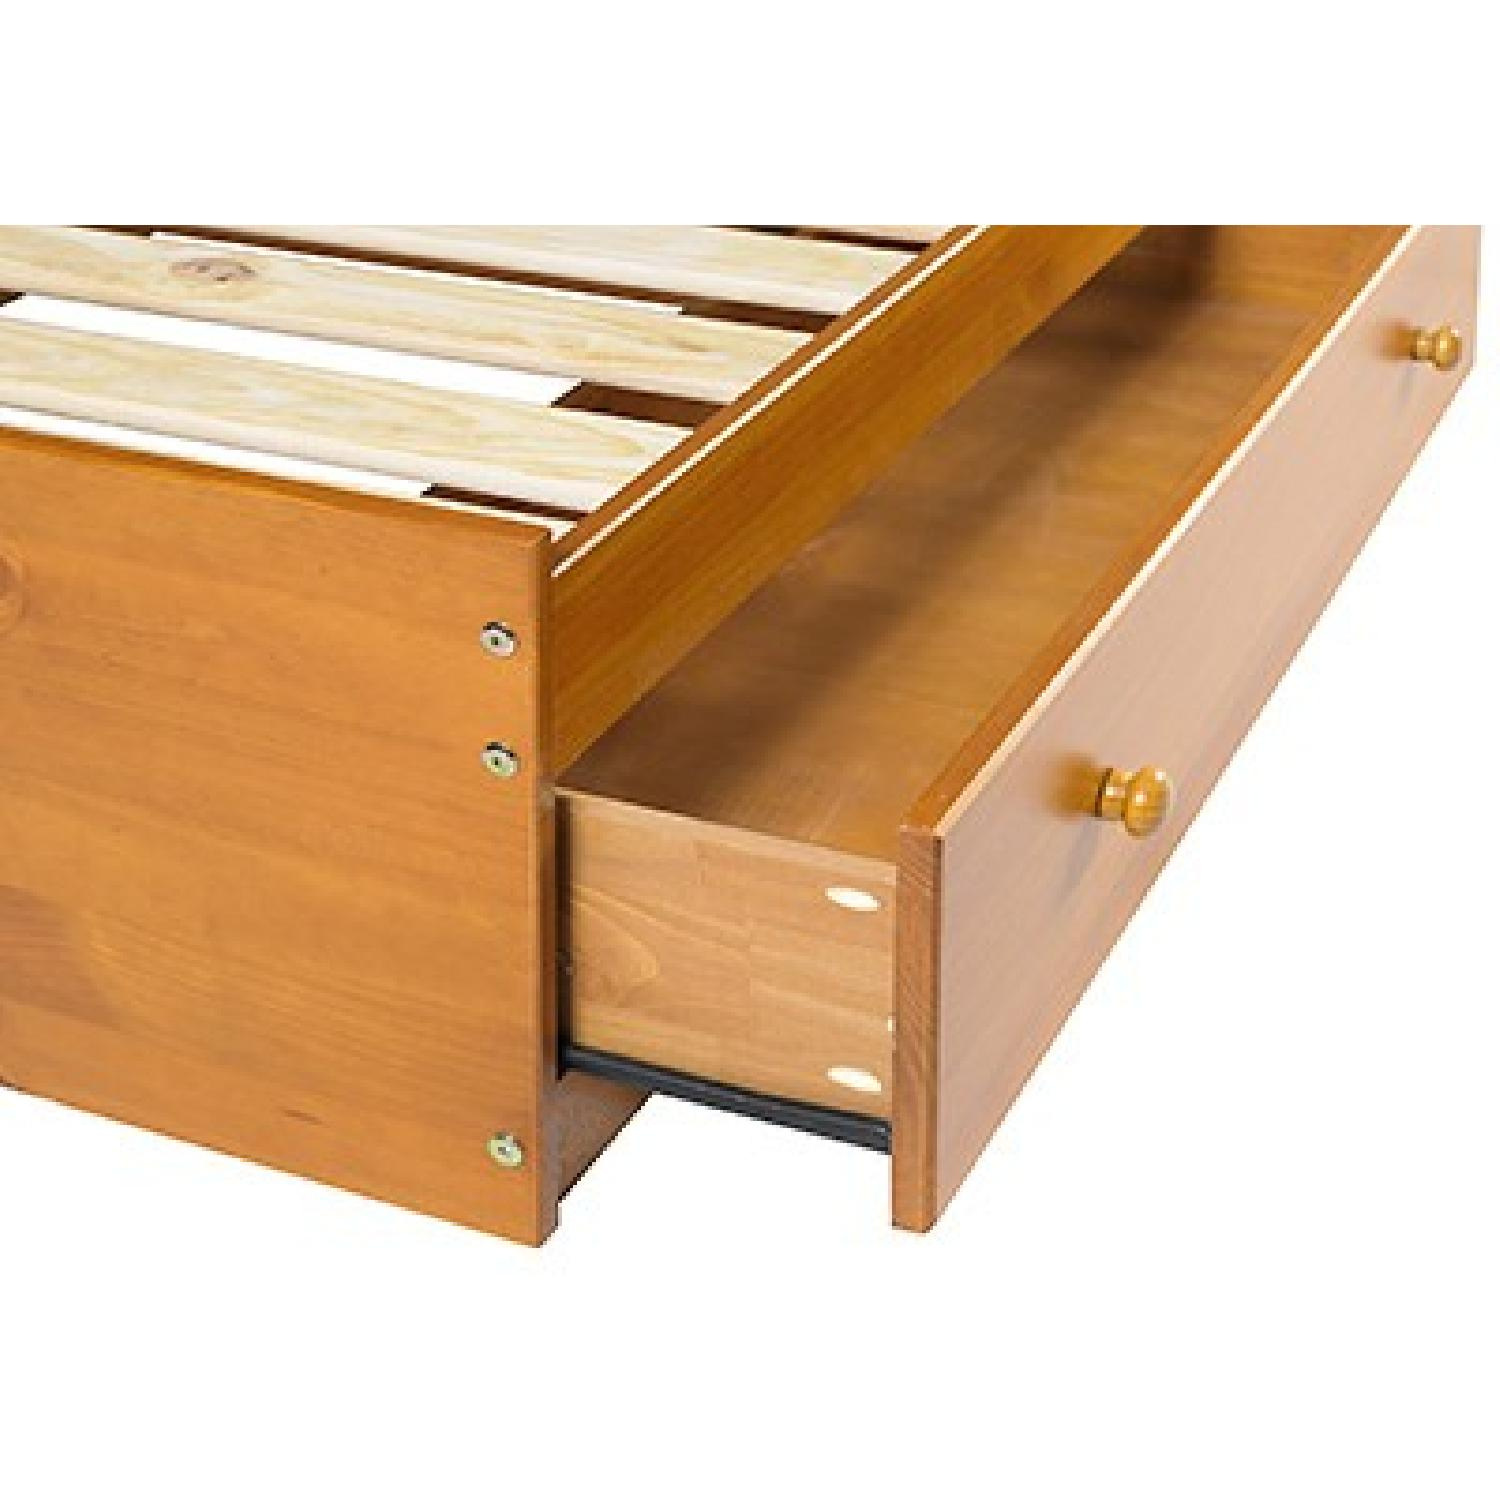 Full Size Solid Wood Bed in Honey Pine w/ Storage Drawers - image-3